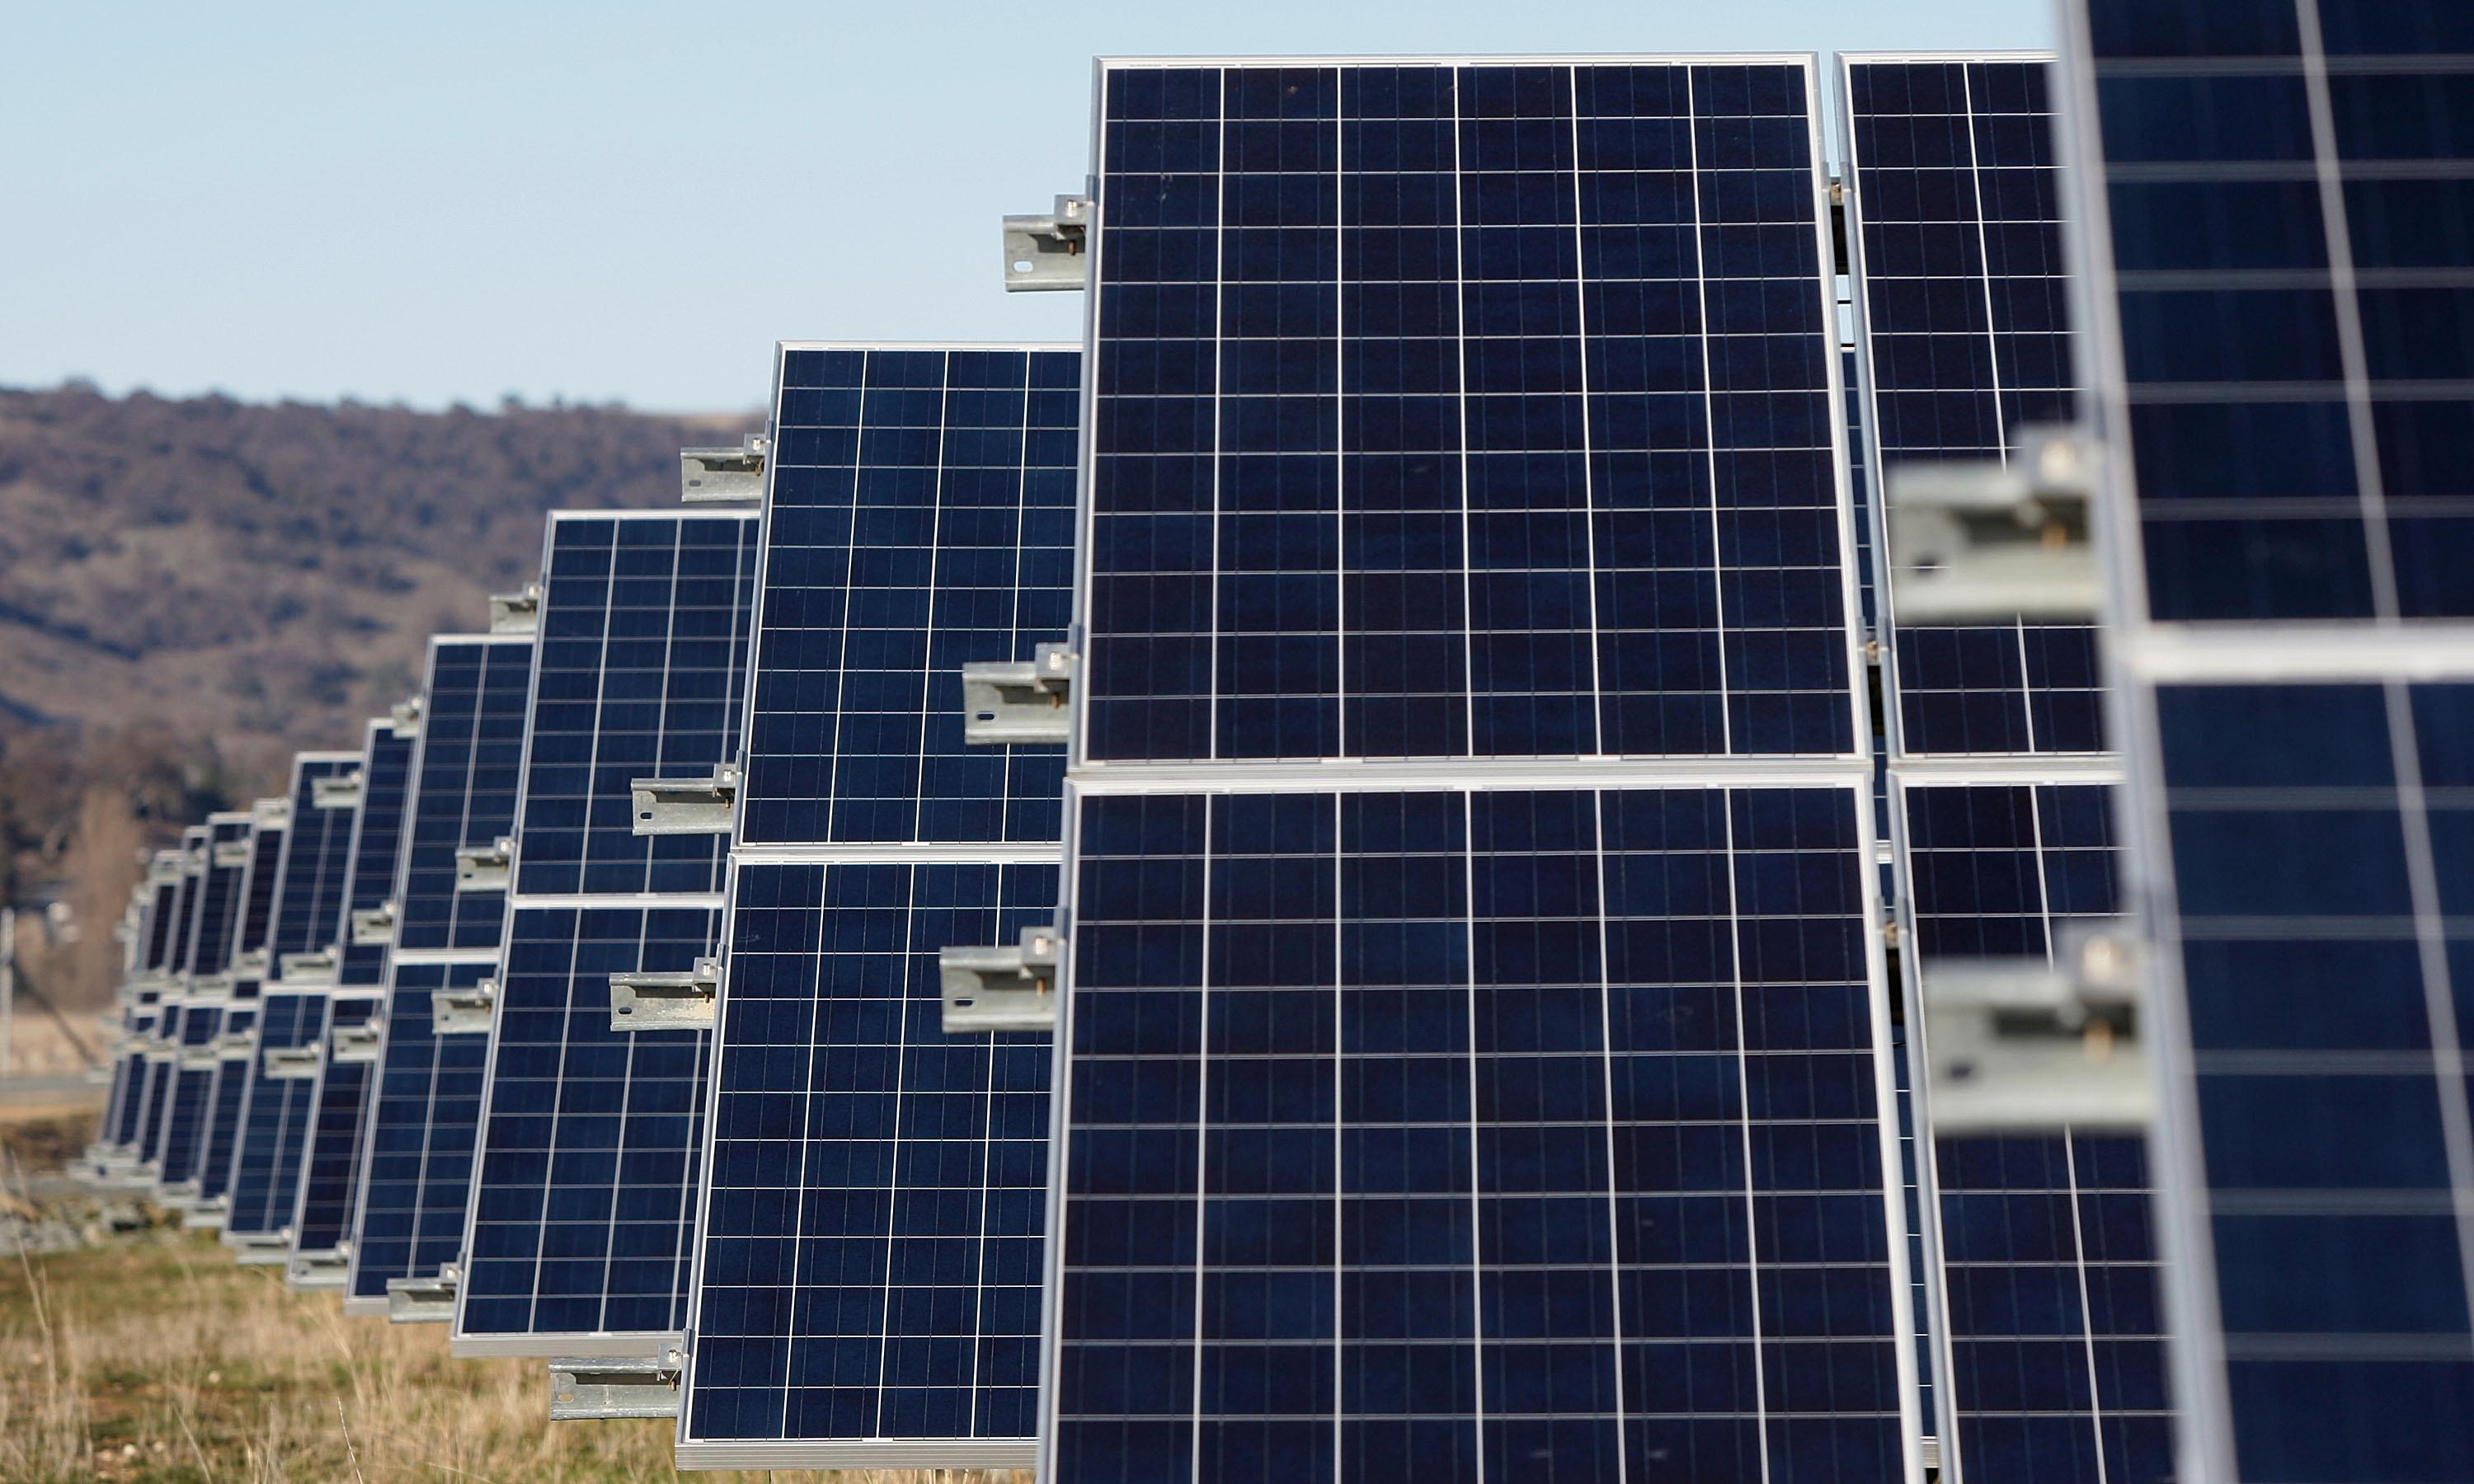 The new electricity boom: renewable energy makes staggering leap but can it last?